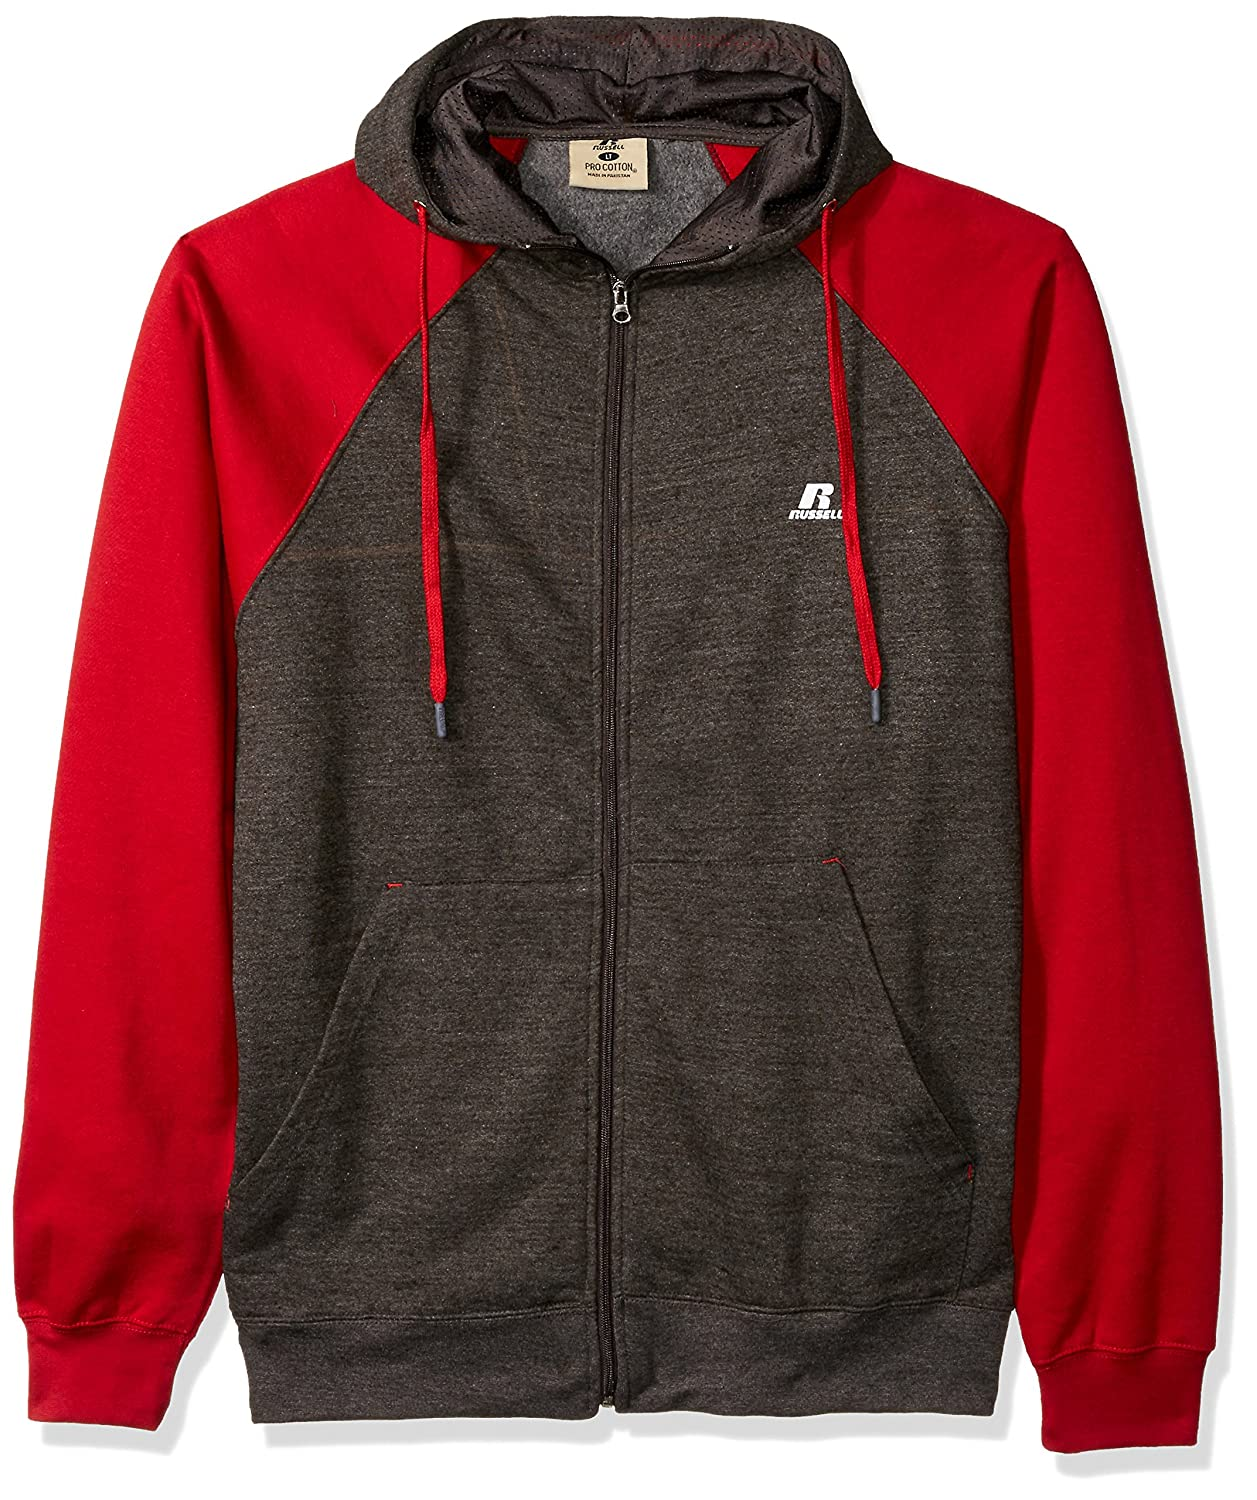 Russell Athletic Men's Big and Tall Full Zip Raglan Hood with Drawstring RUSS4820AM